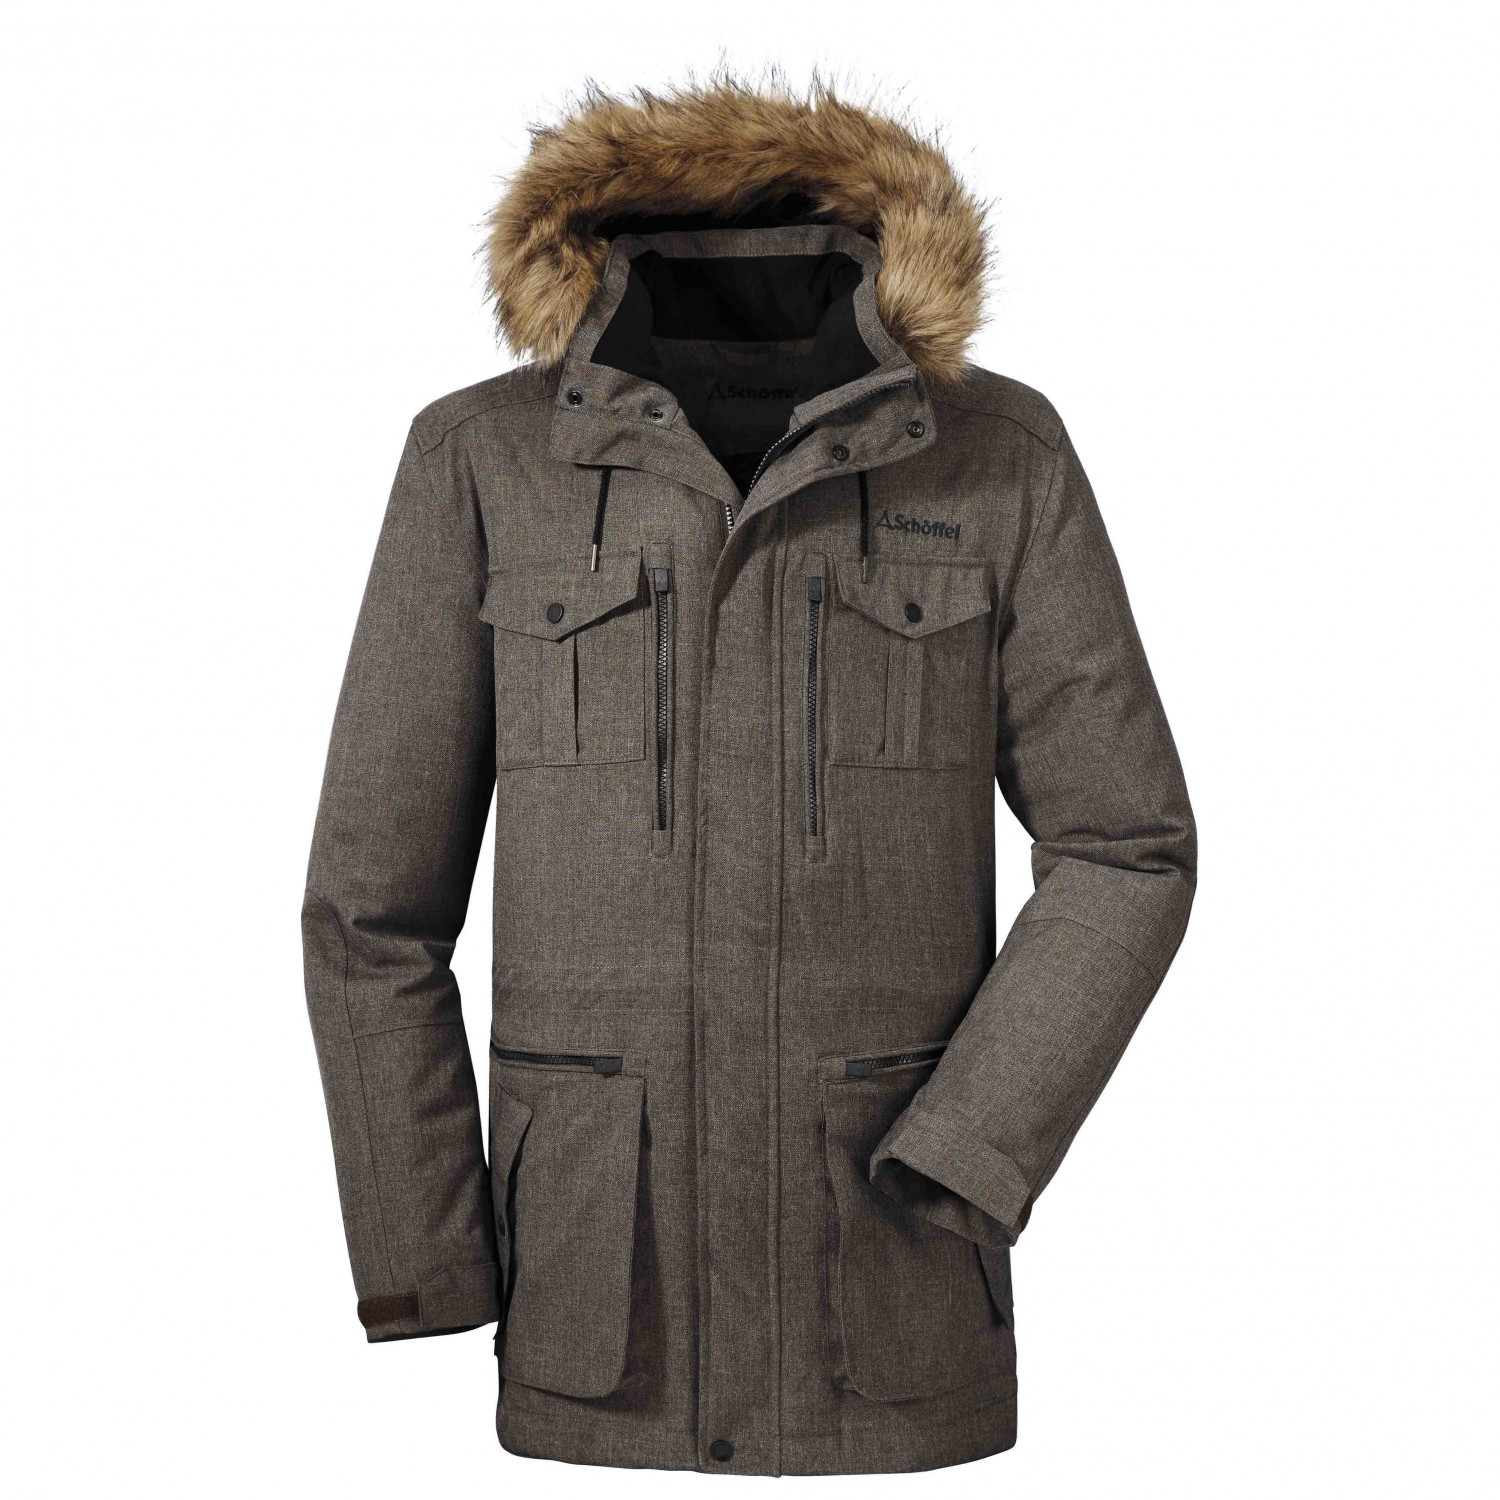 sch ffel insulated jacket nepal winterjacke herren. Black Bedroom Furniture Sets. Home Design Ideas